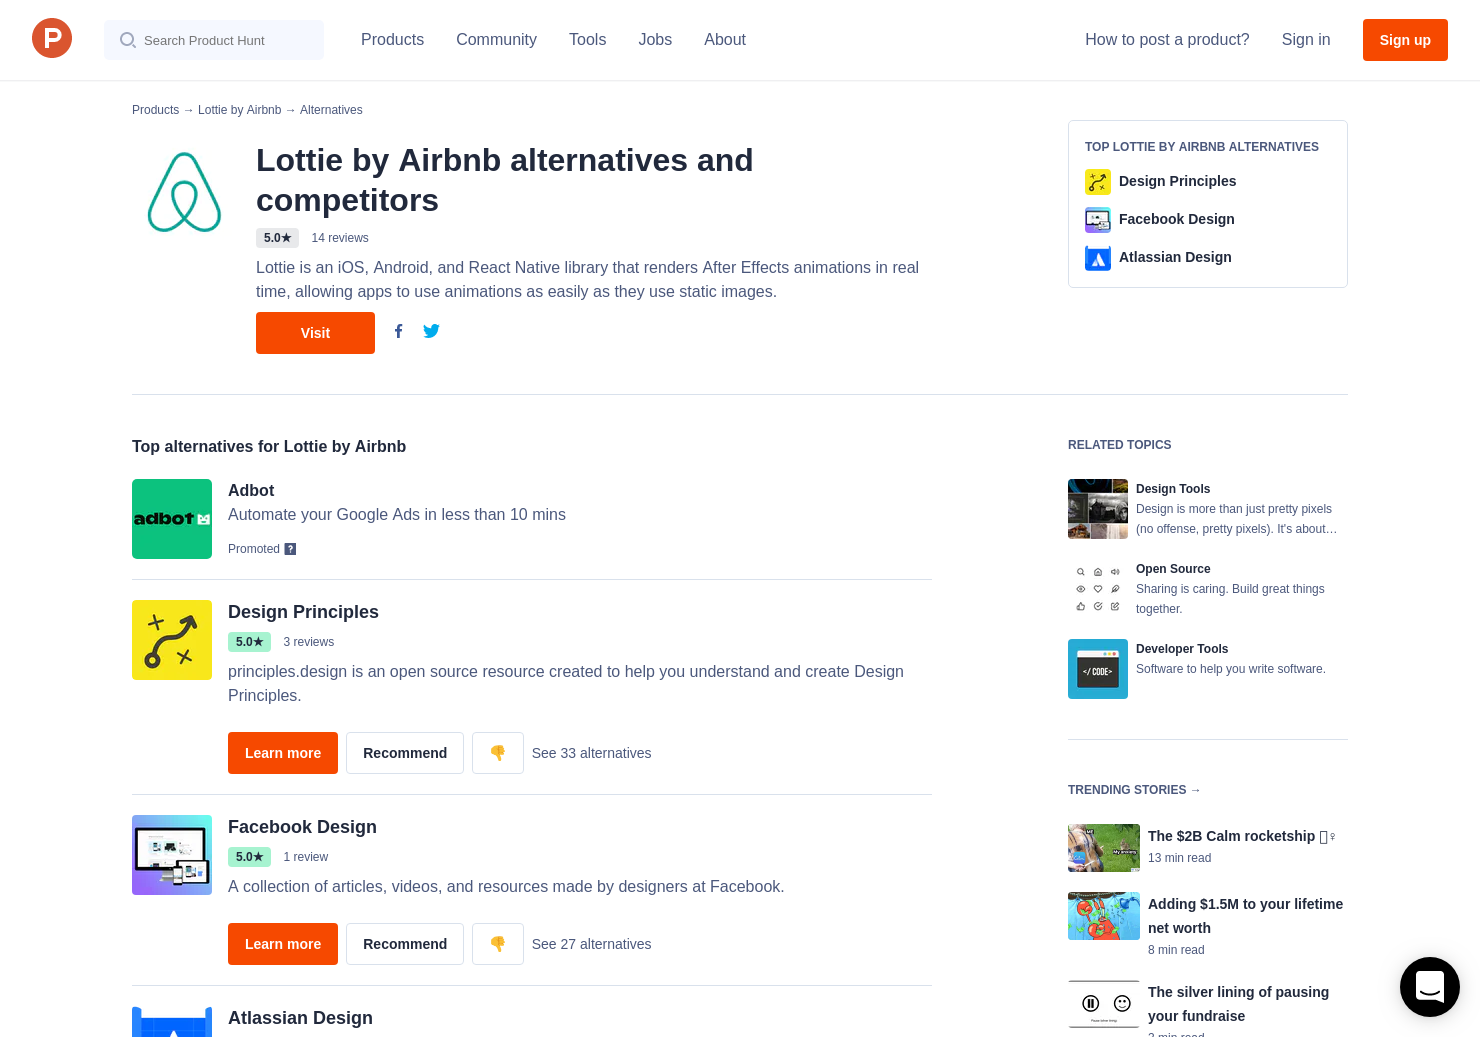 11 Alternatives to Lottie by Airbnb | Product Hunt